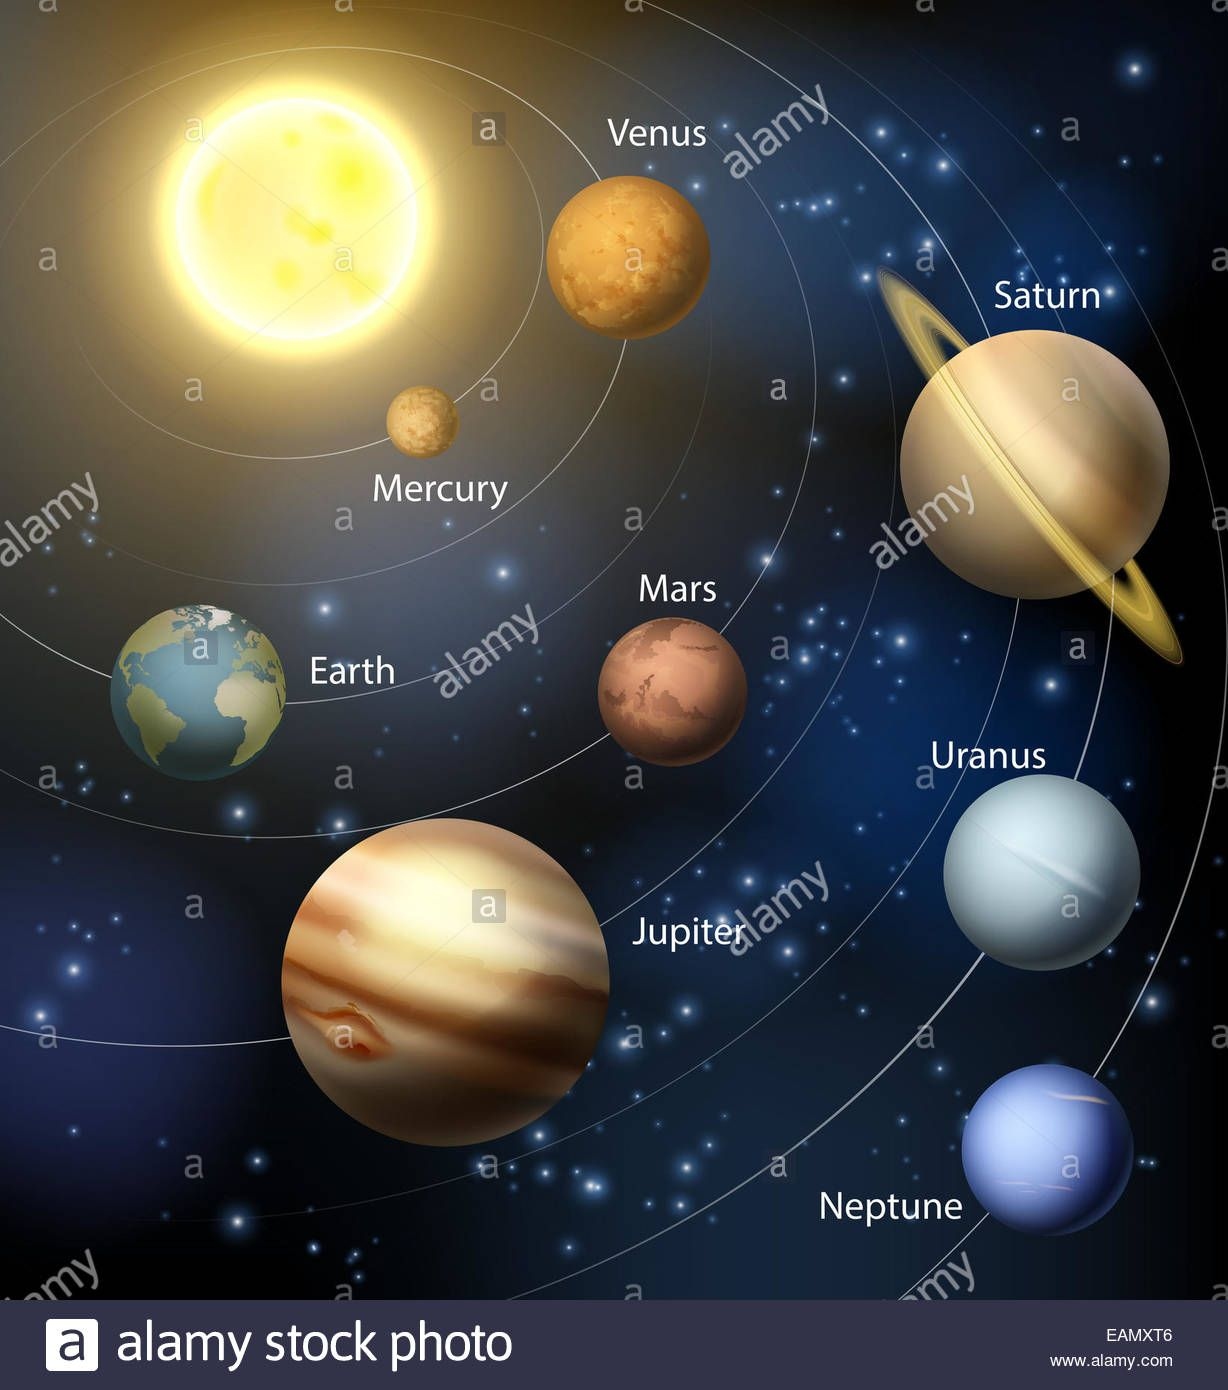 Download This Stock Image The Solar System With The